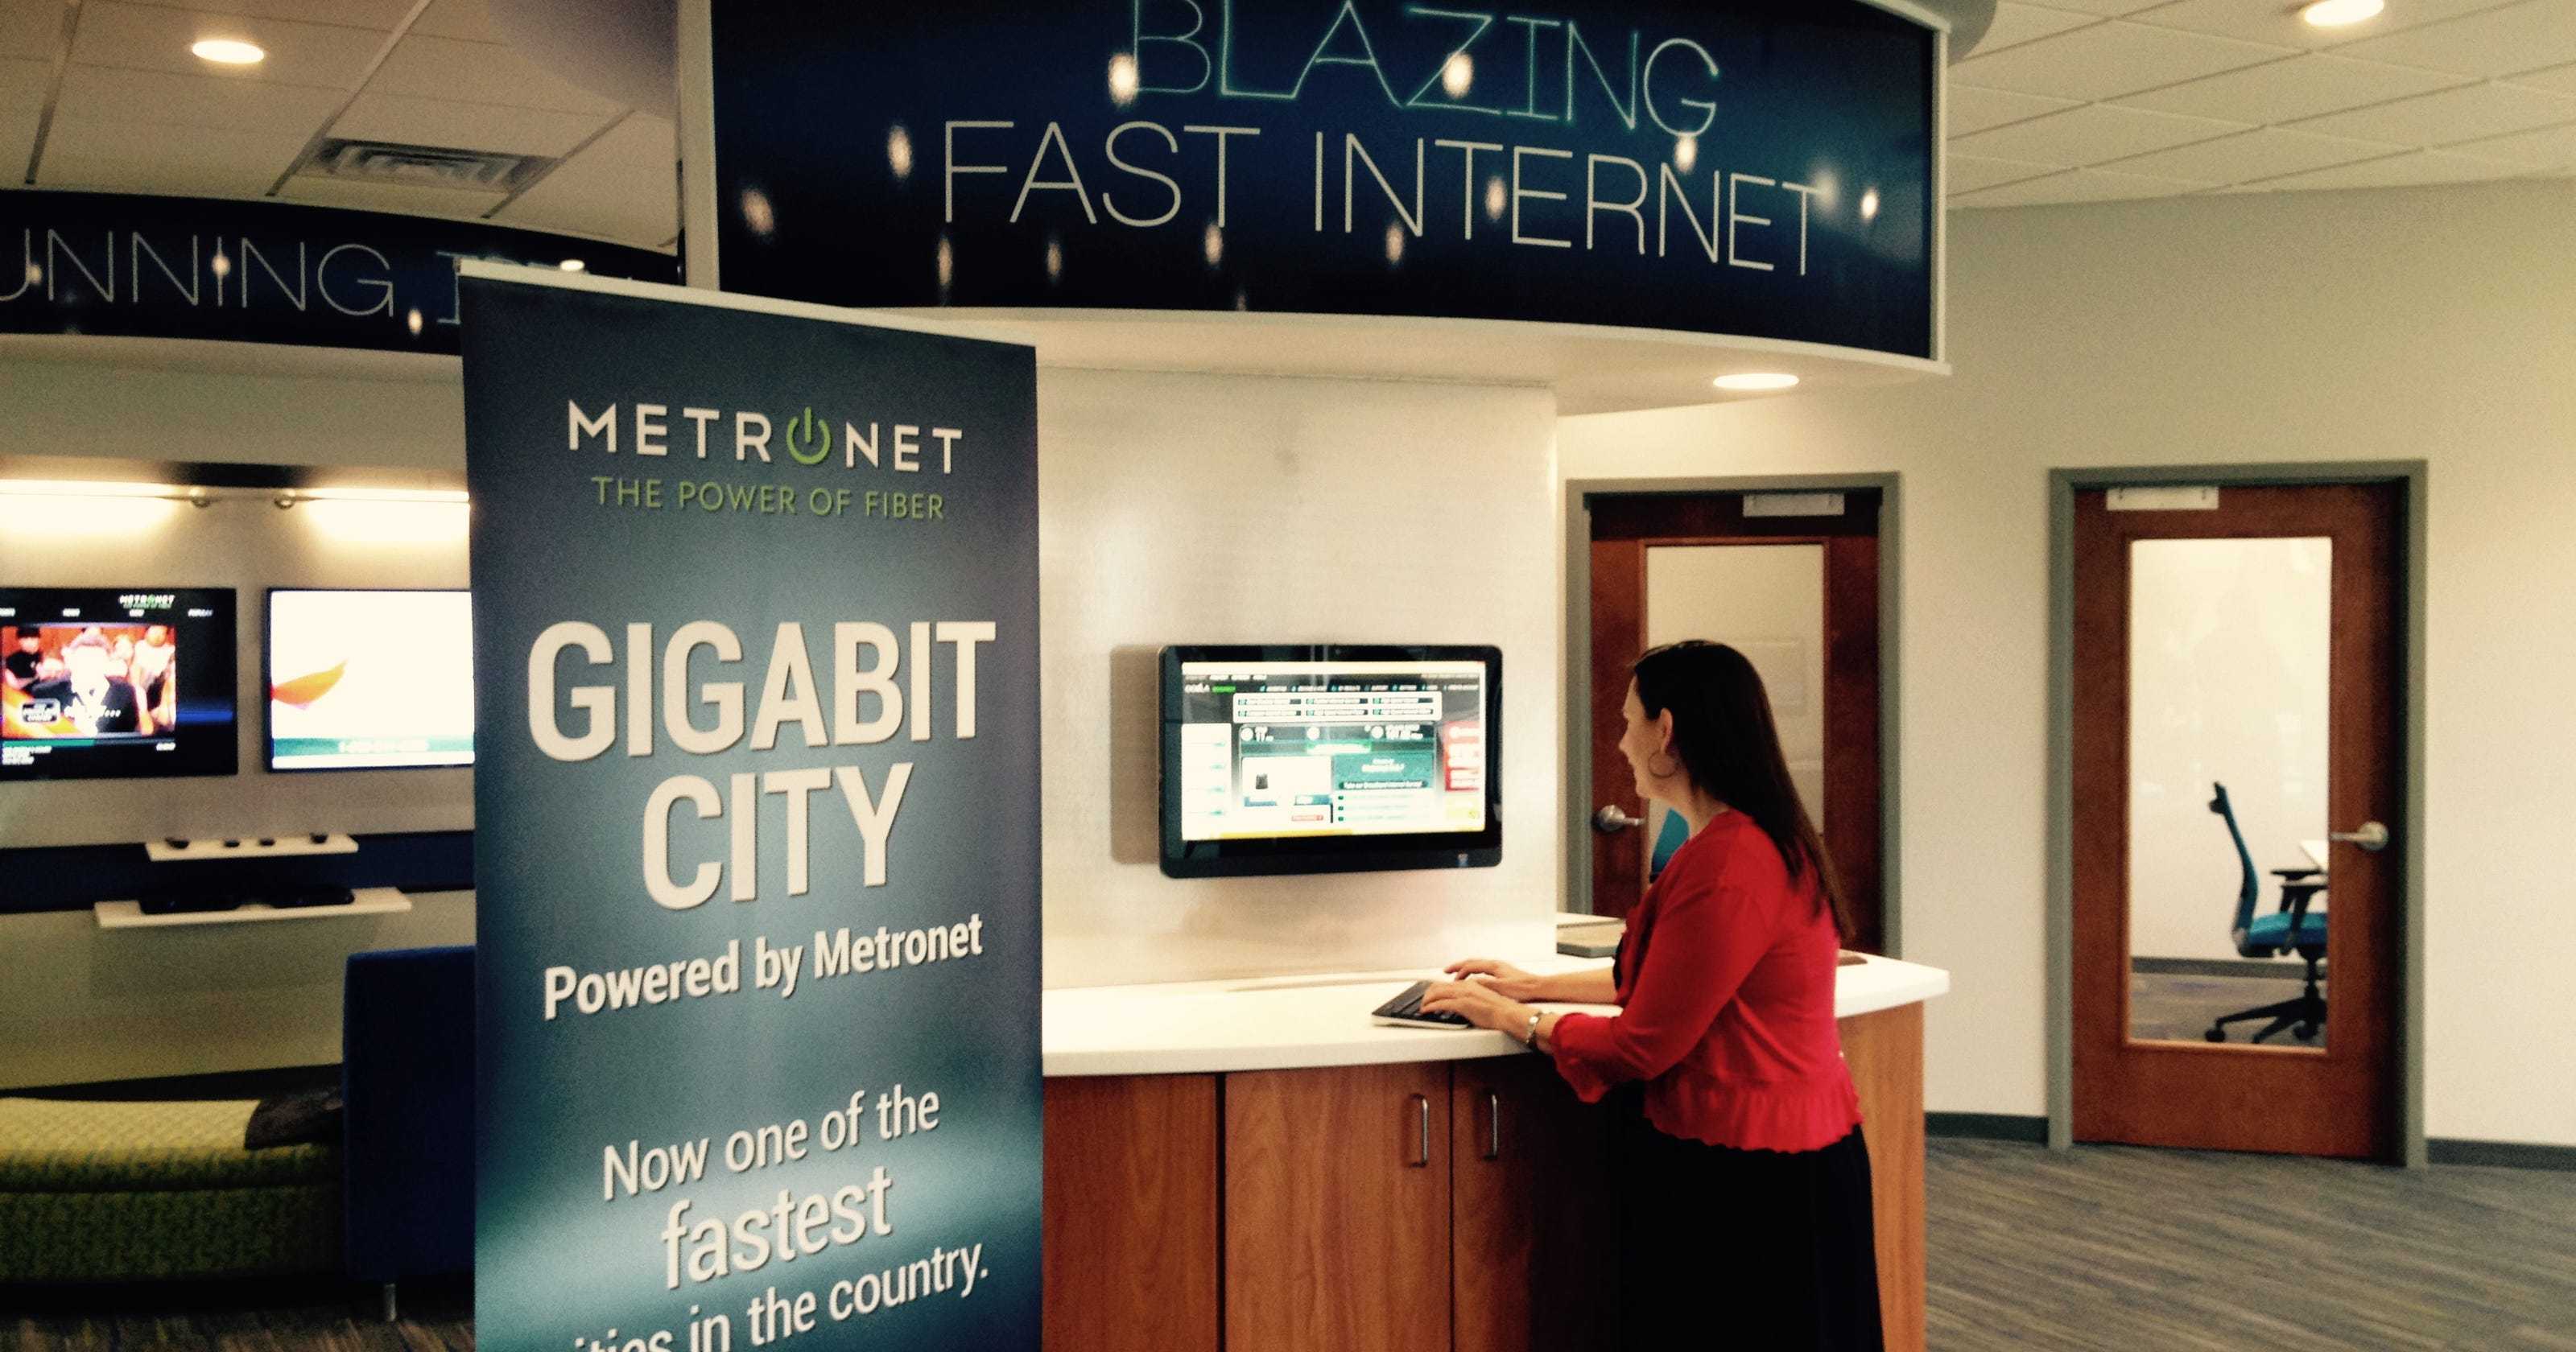 Metronet's Internet speed comes at a price